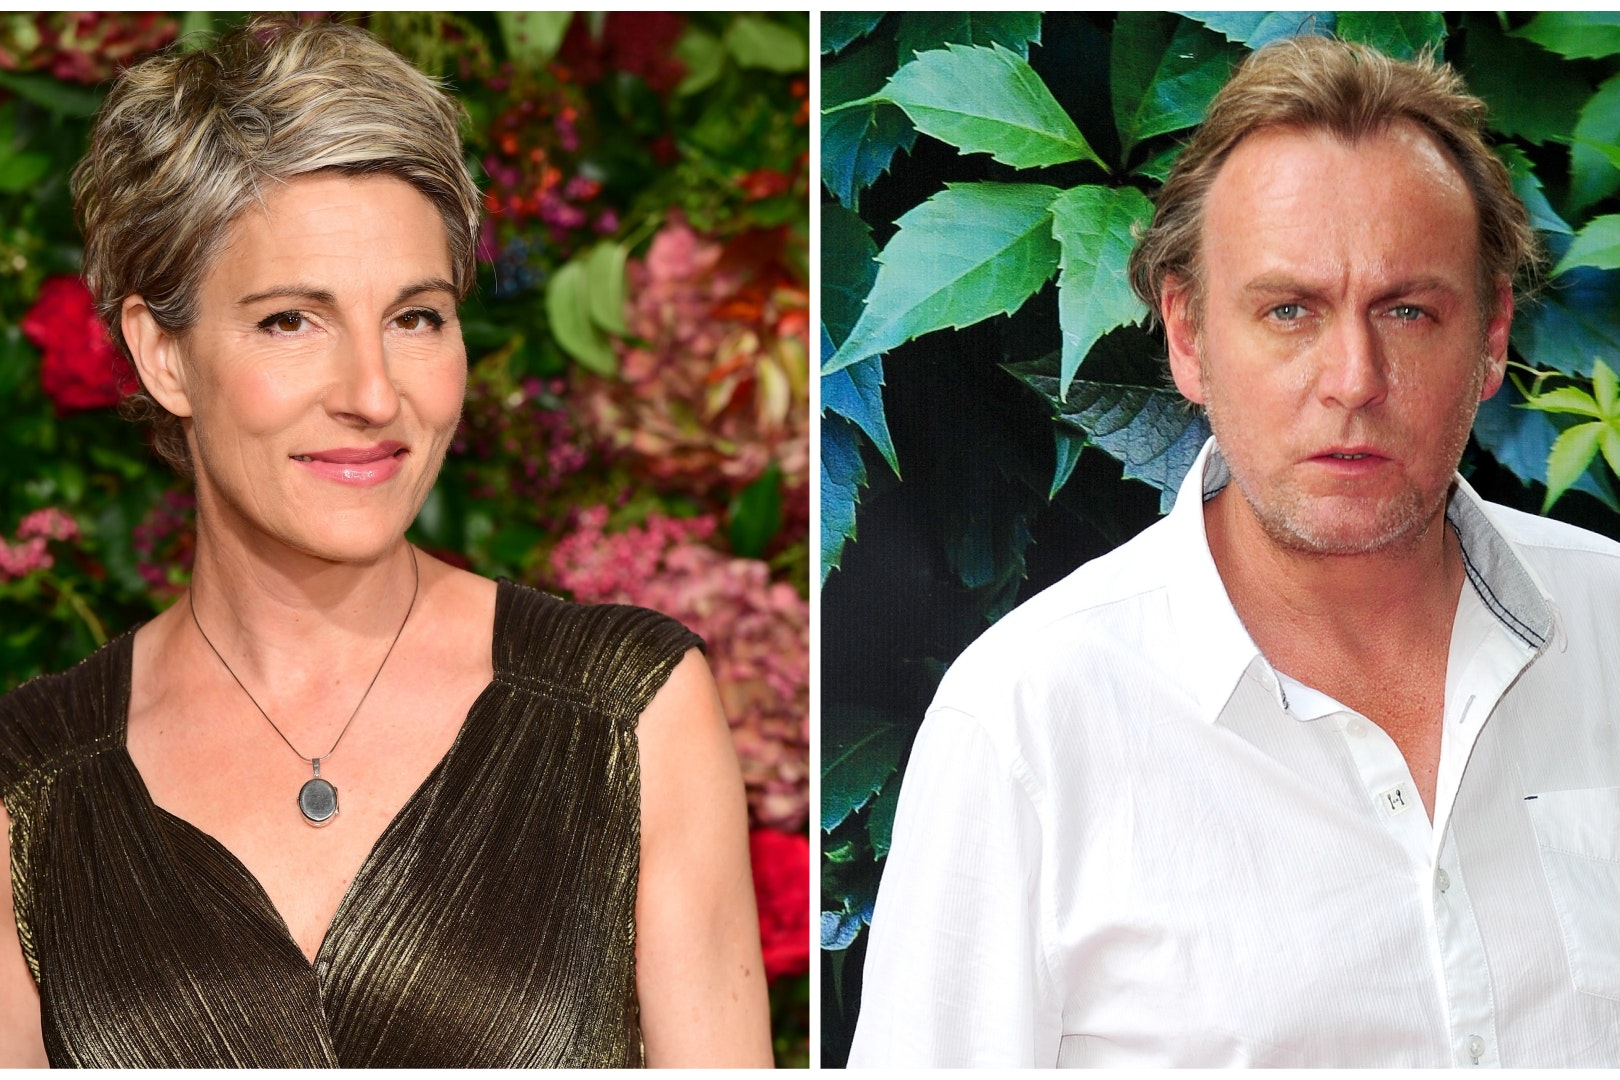 Tamsin Greig and Philip Glenister